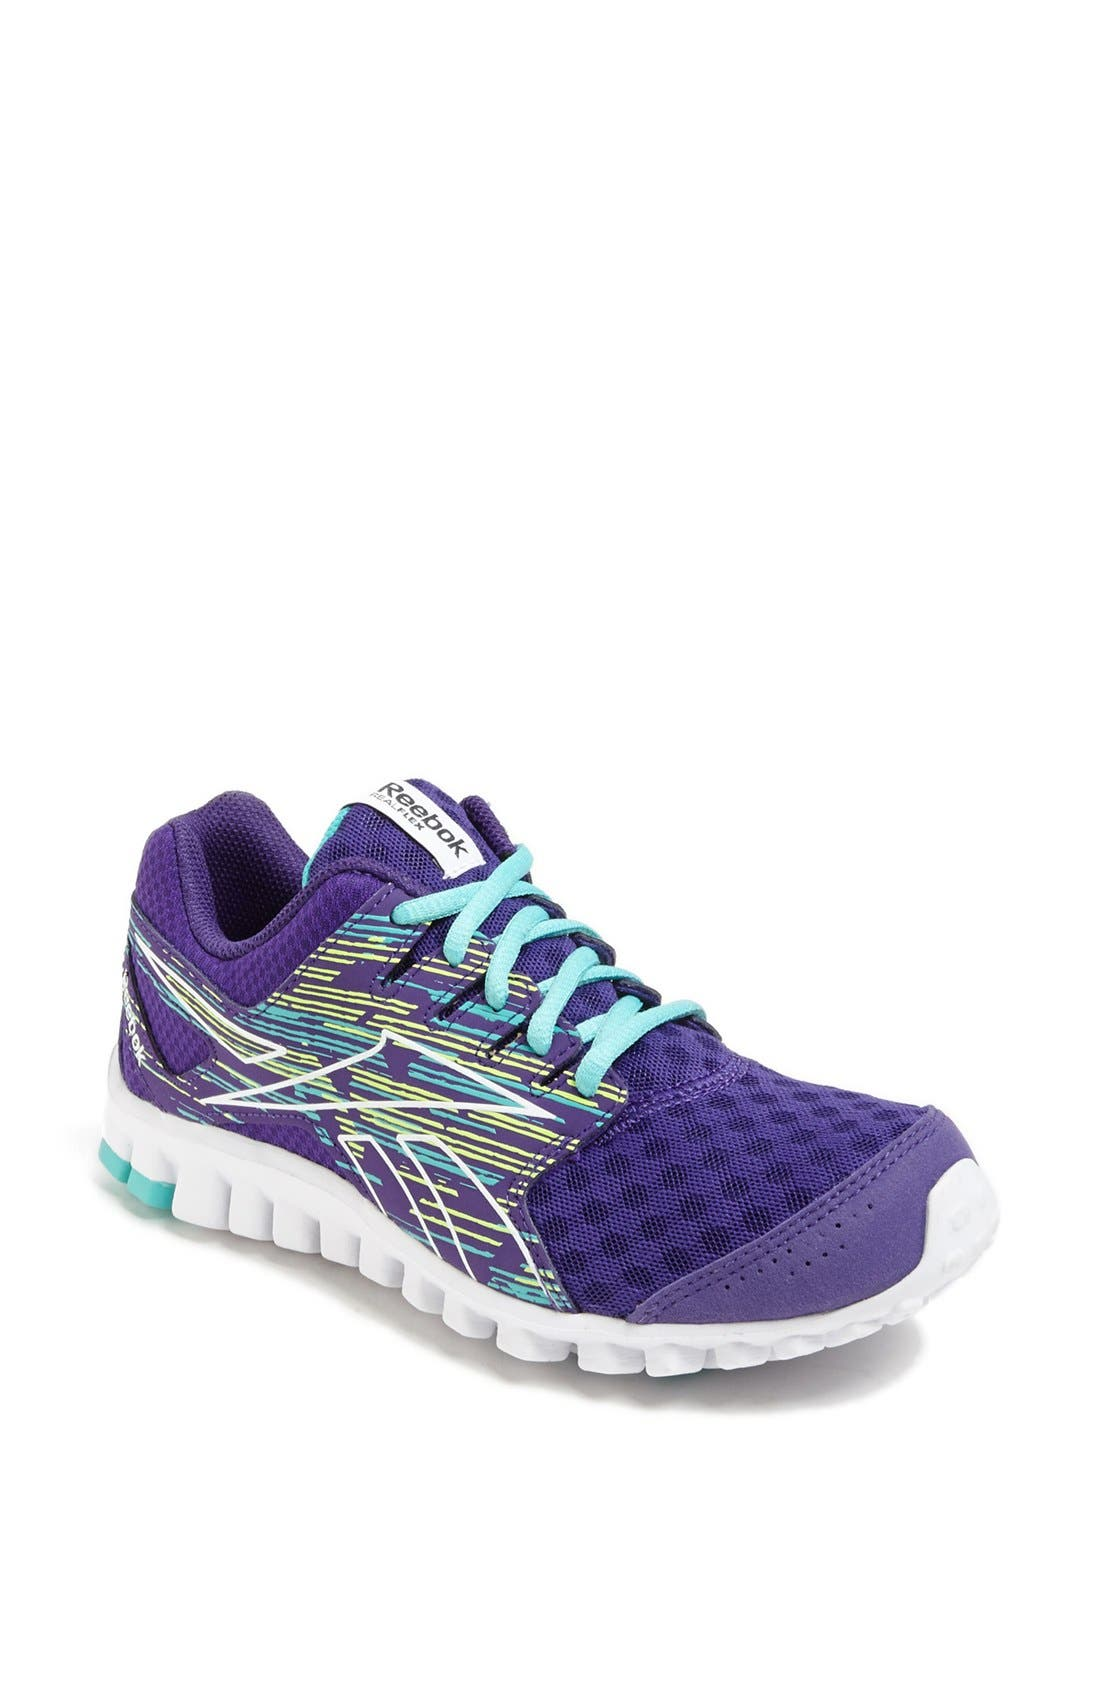 Main Image - Reebok 'RealFlex Scream 3.0' Running Shoe (Women)